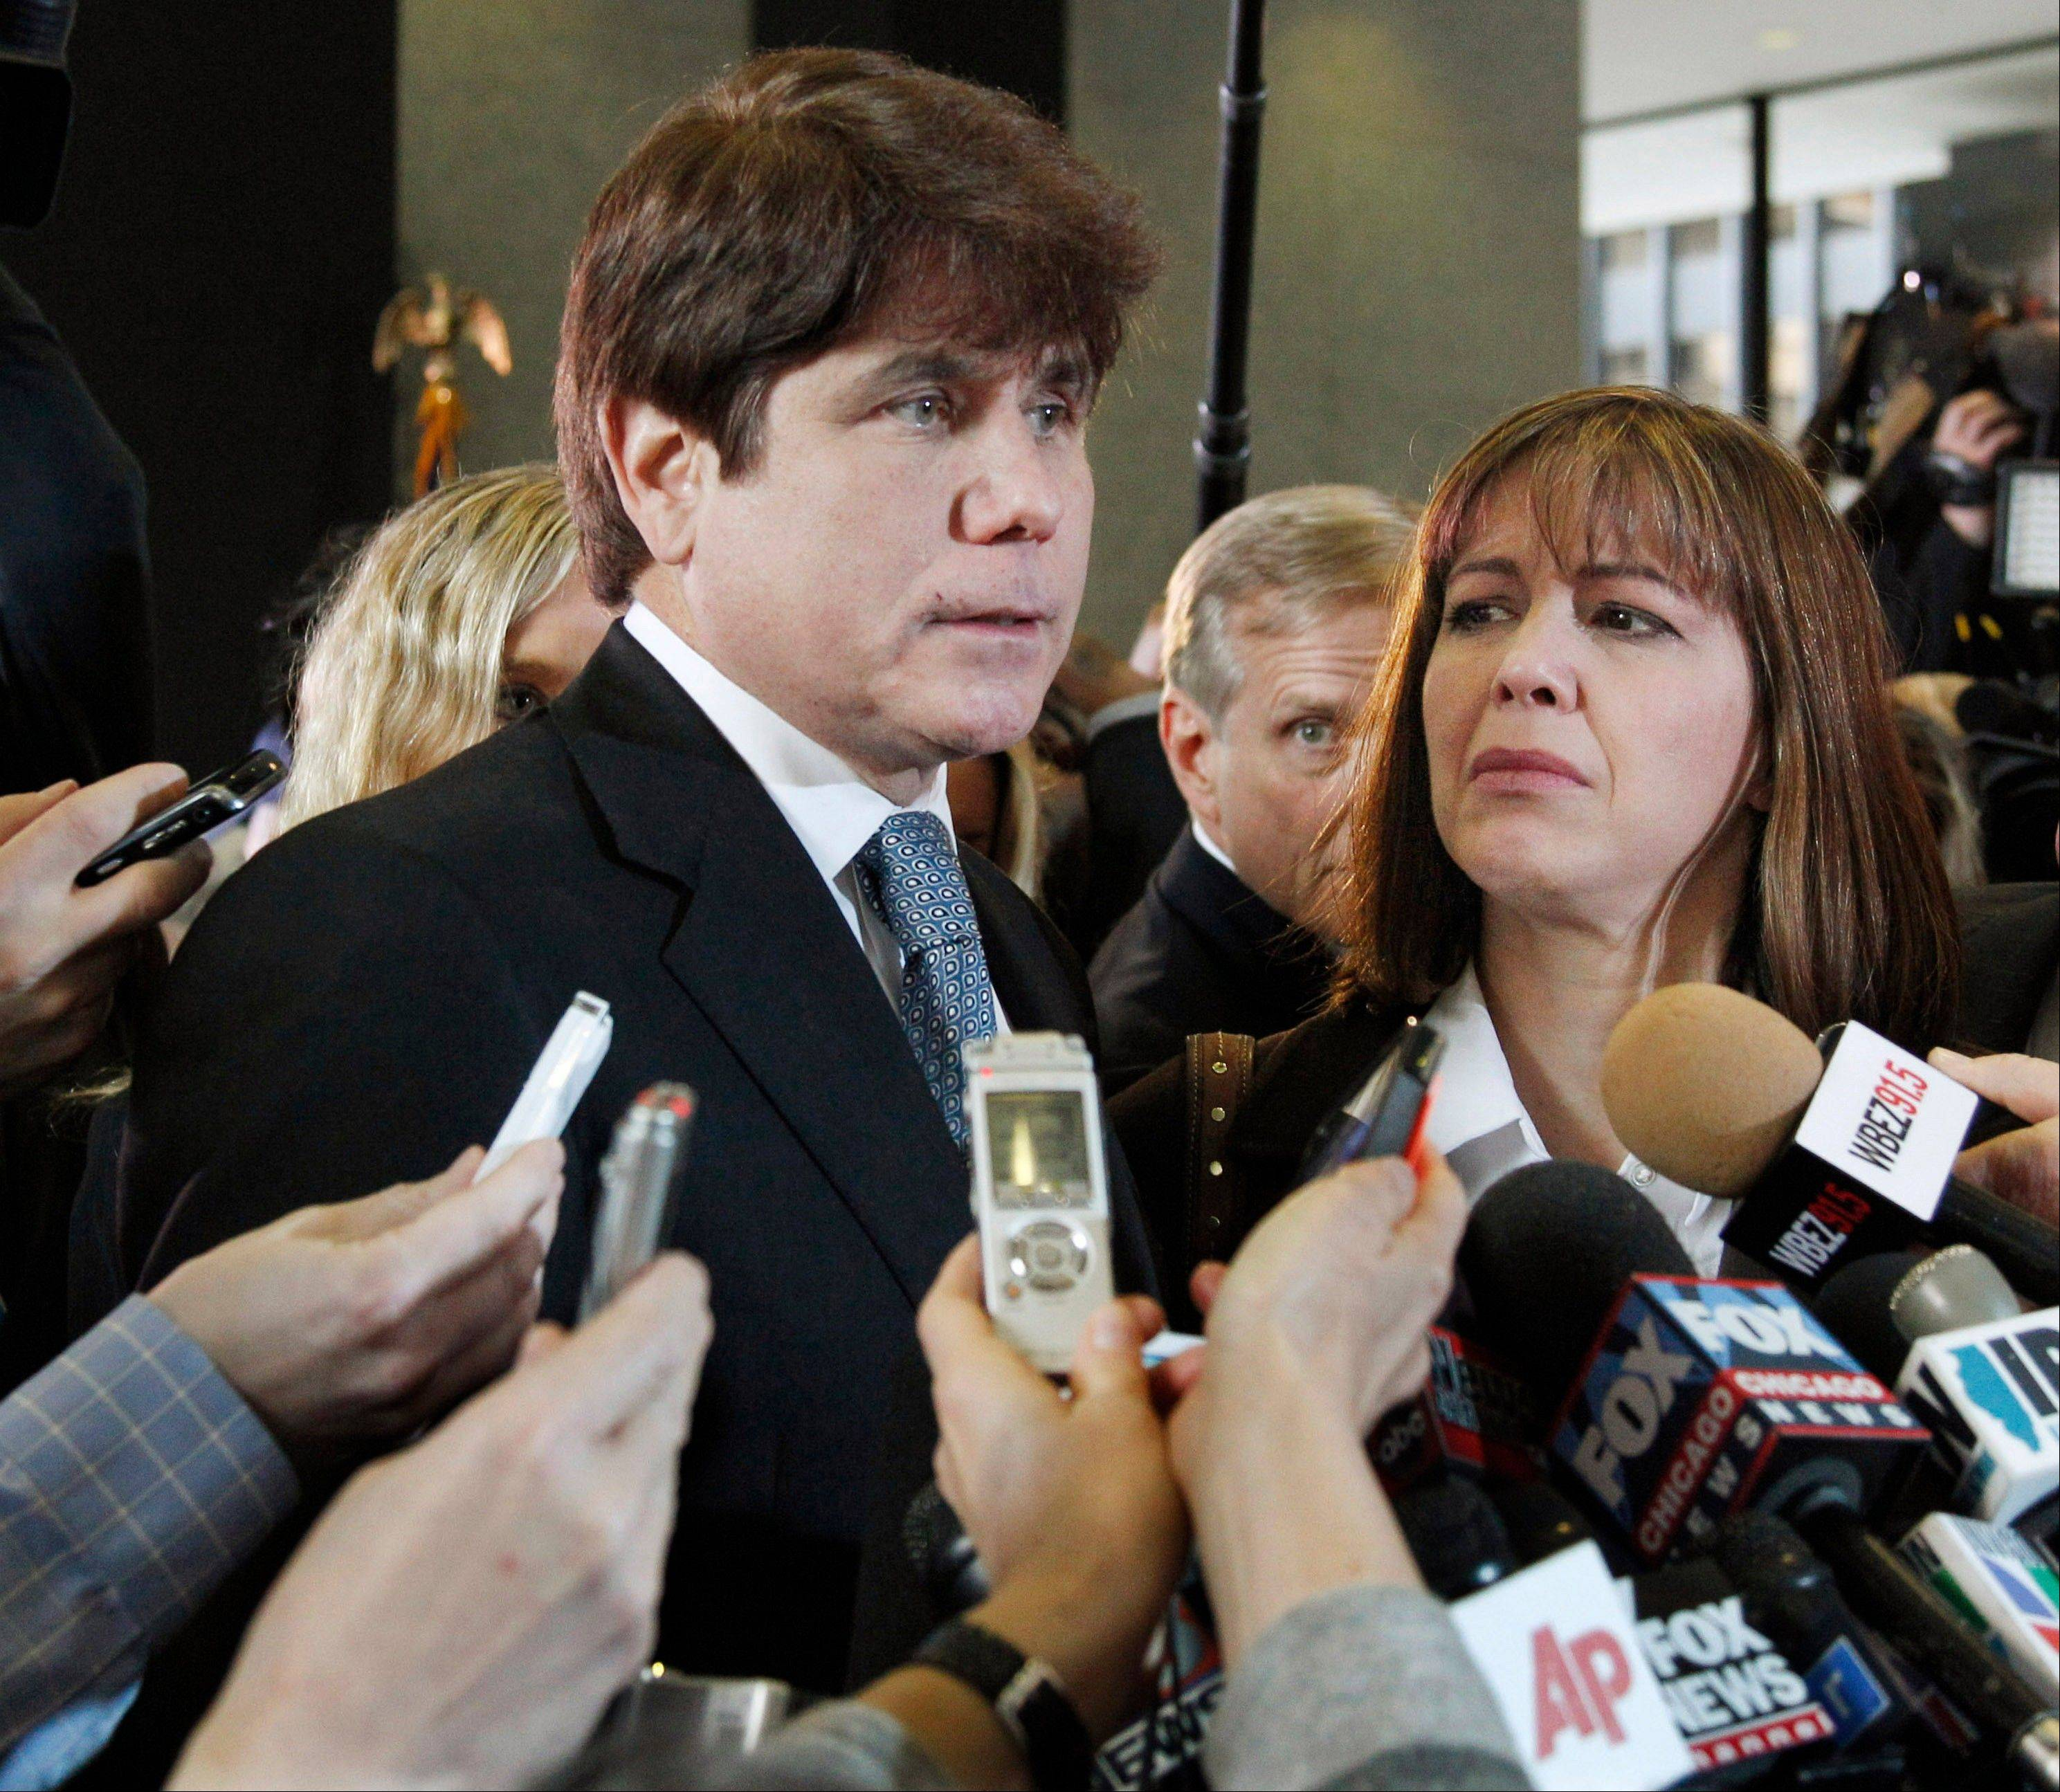 Former Gov. Rod Blagojevich speaks to reporters with his wife, Patti, after he was sentenced to 14 years in prison on Dec. 7, 2011.